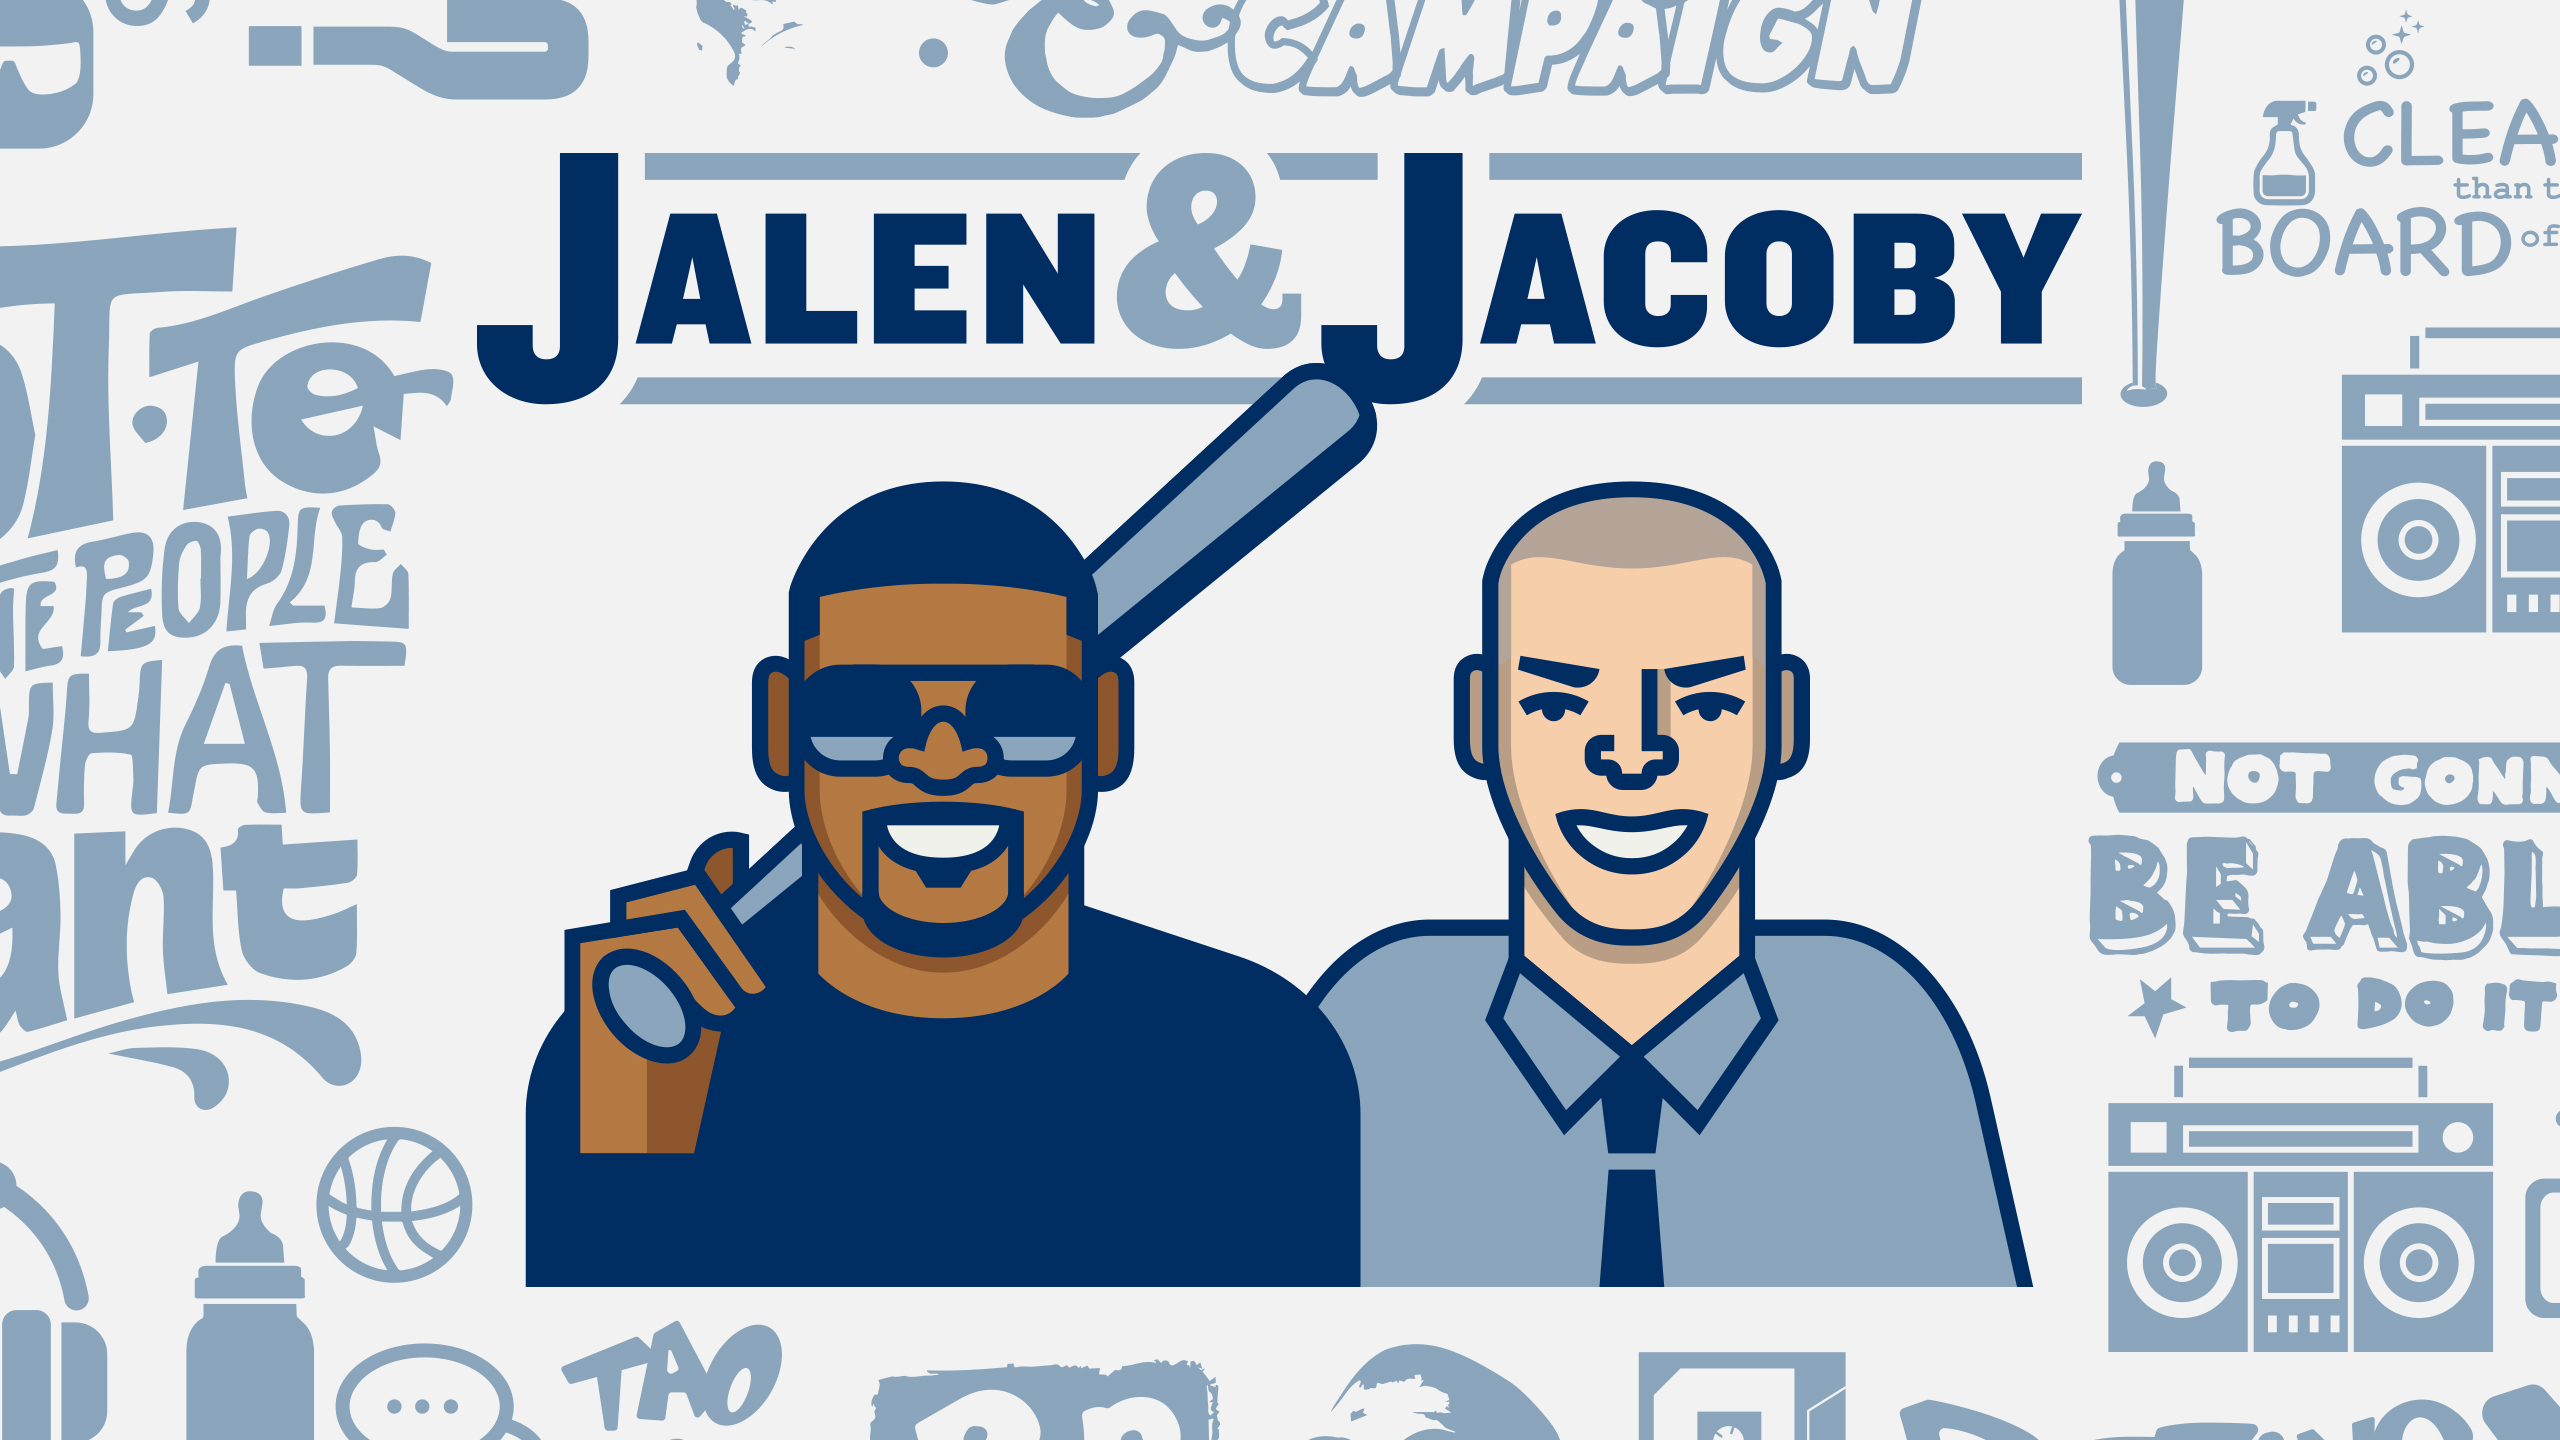 Tue, 12/11 - Jalen & Jacoby